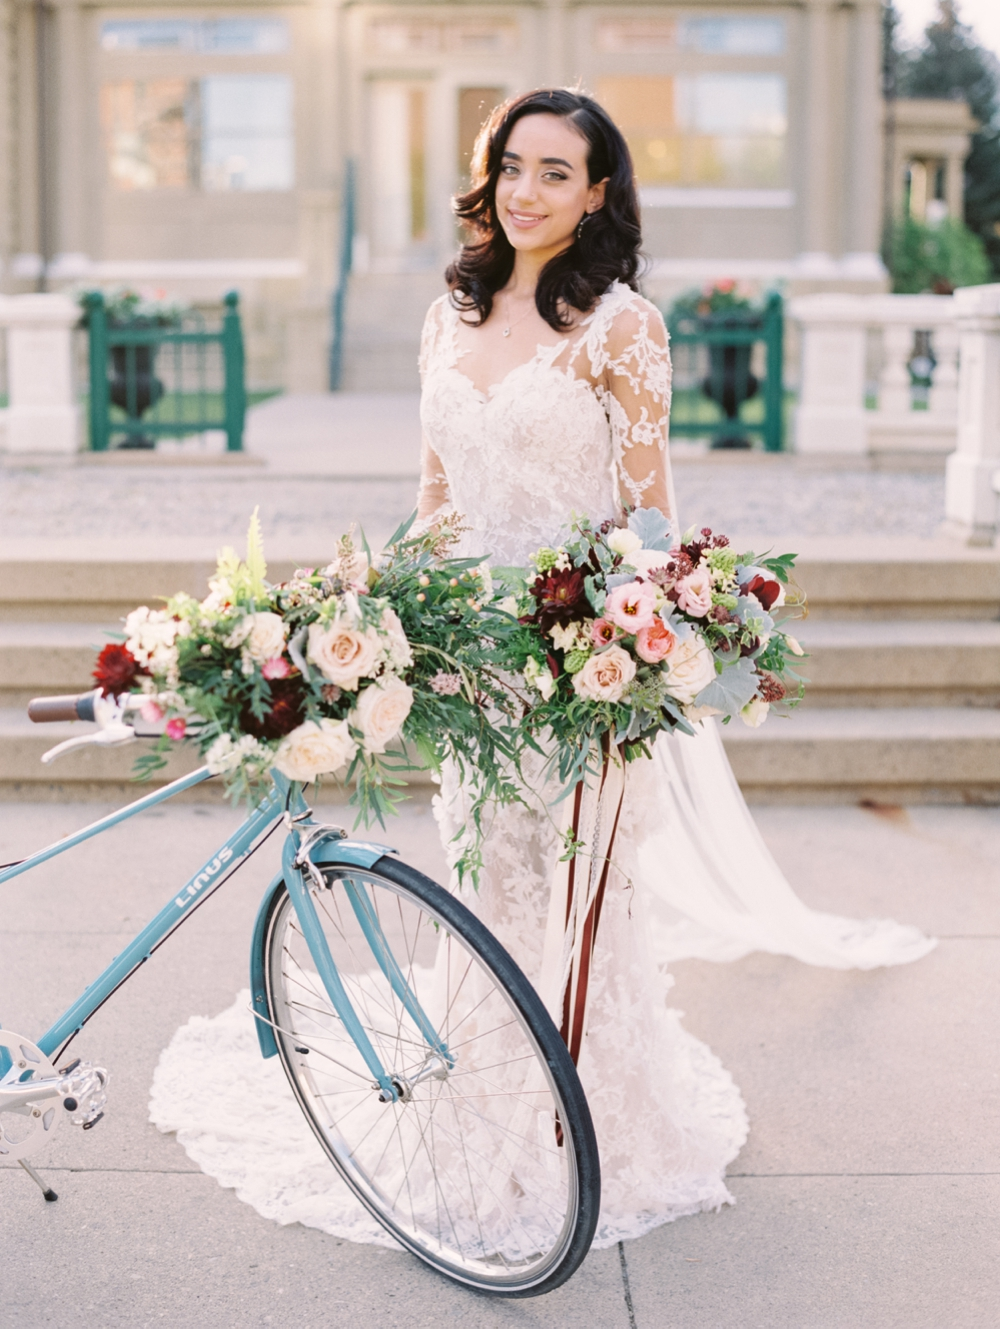 Calgary Wedding Photographers | Tuscany Italy Wedding | Canmore Banff Wedding Photography | Trendy Bride Magazine Cover